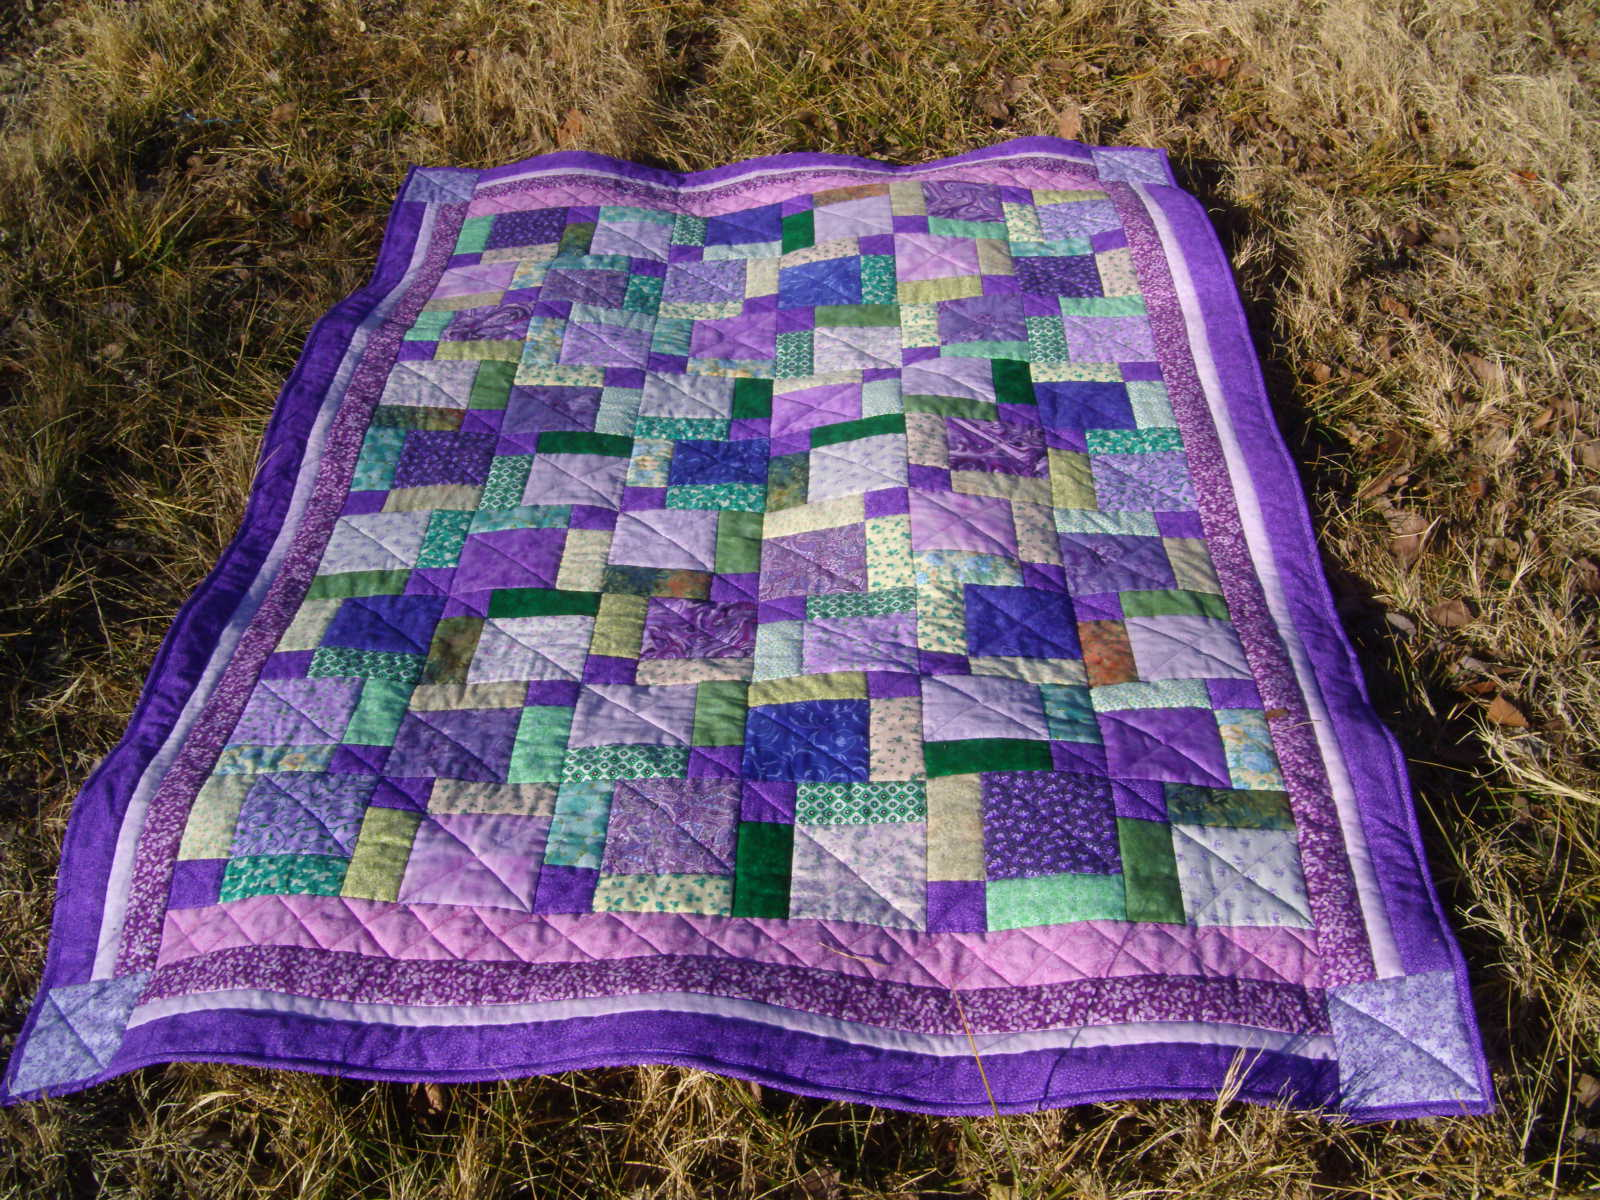 judysquiltsandthings: tossed nine patch quilt